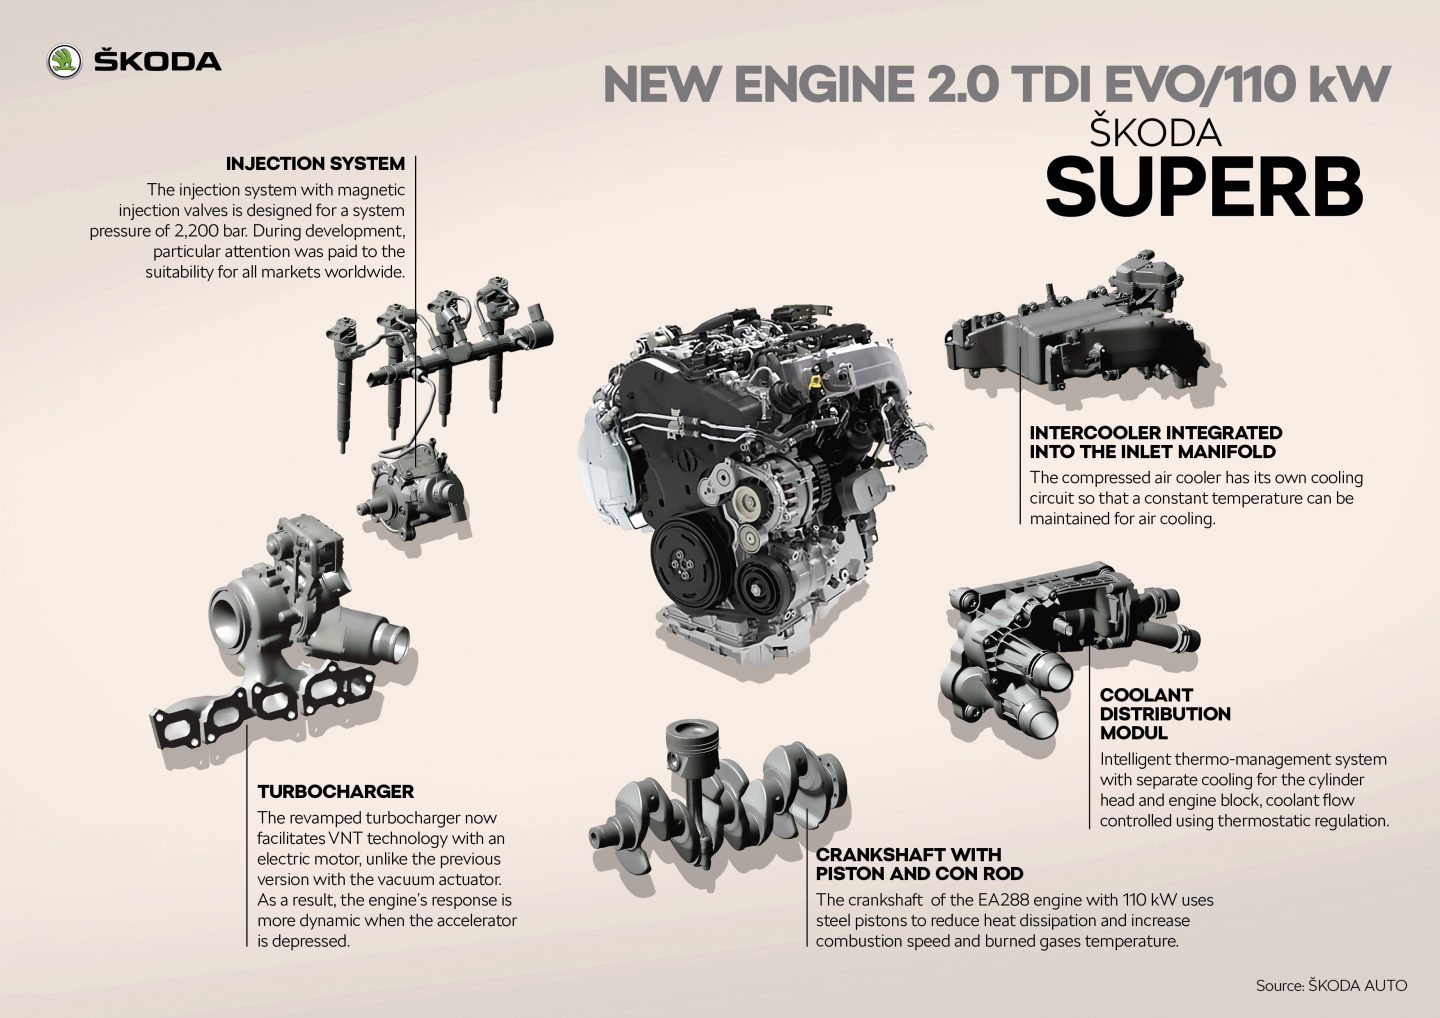 ŠKODA SUPERB New engine 110-kW 2.0 TDI EVO